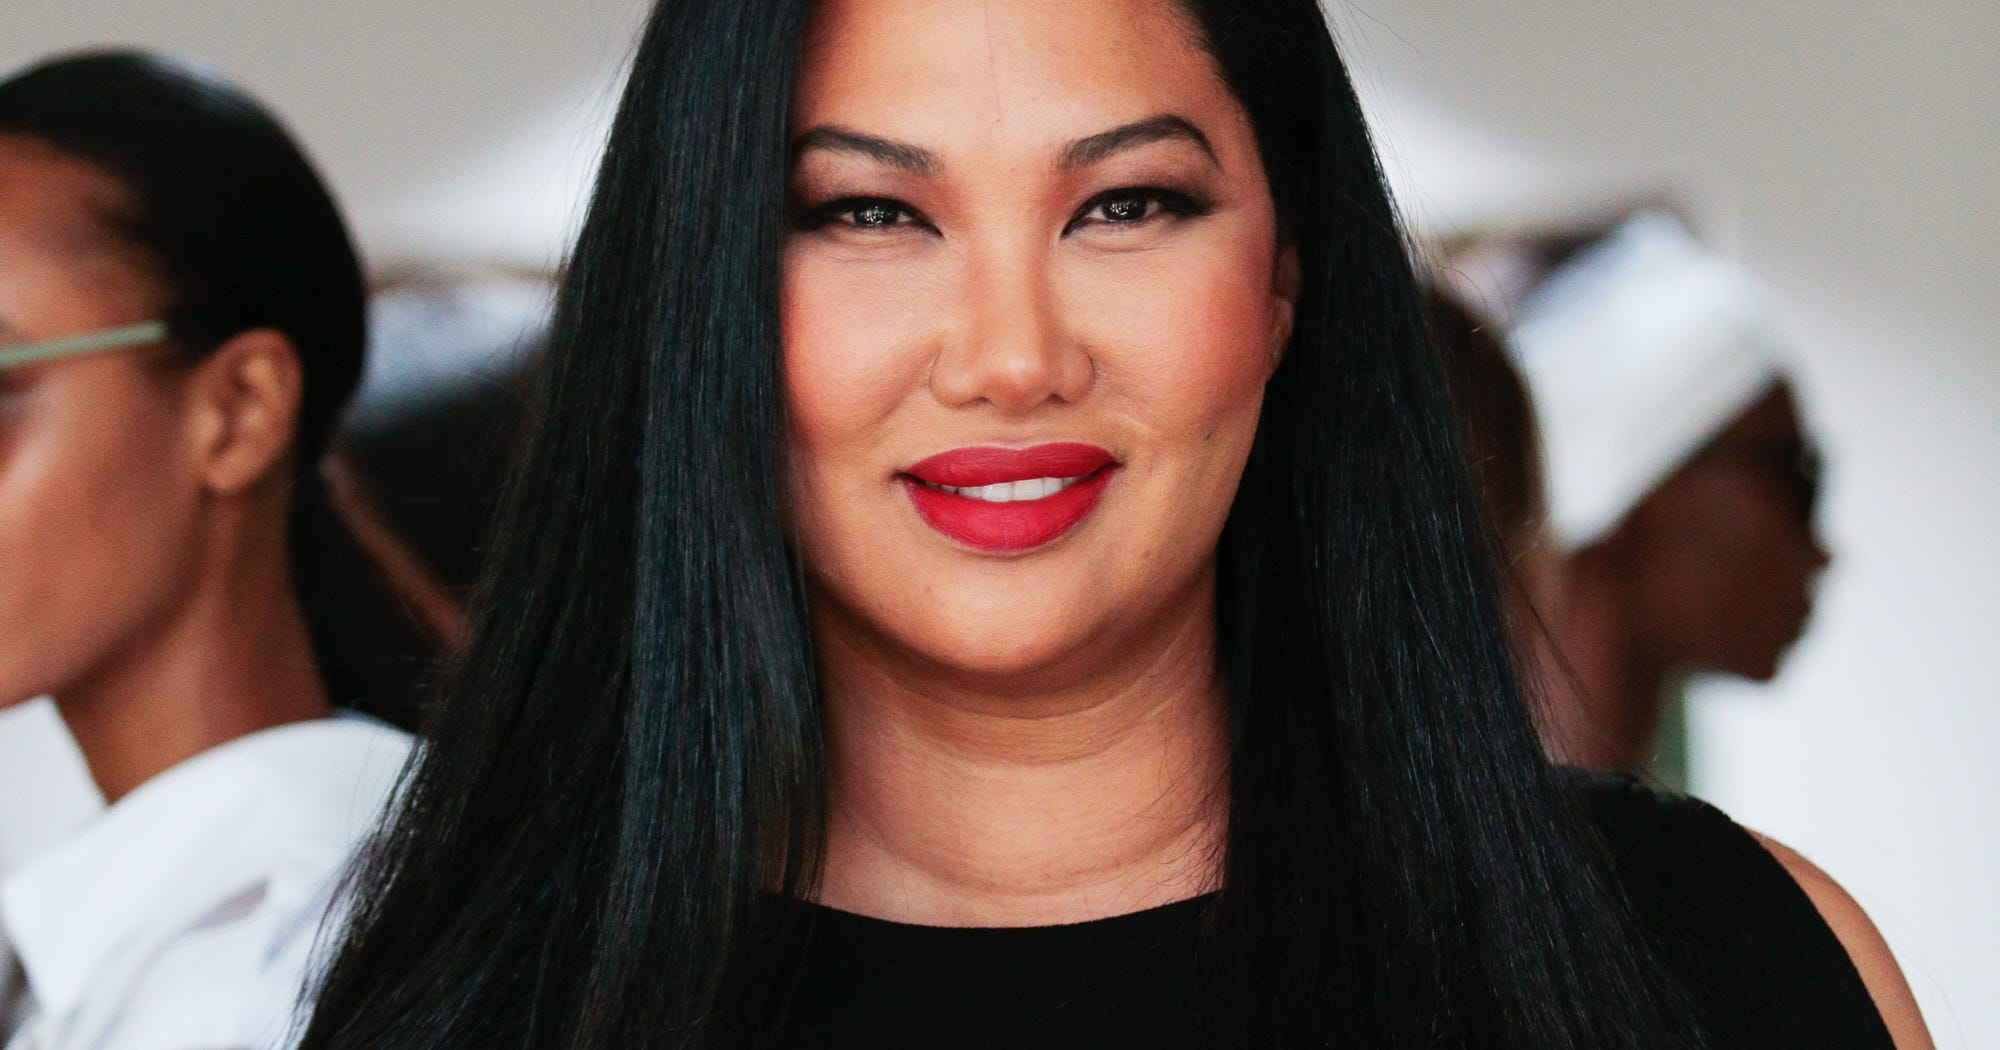 Ming Lee Kimora Lee Simmons Daughter Photos